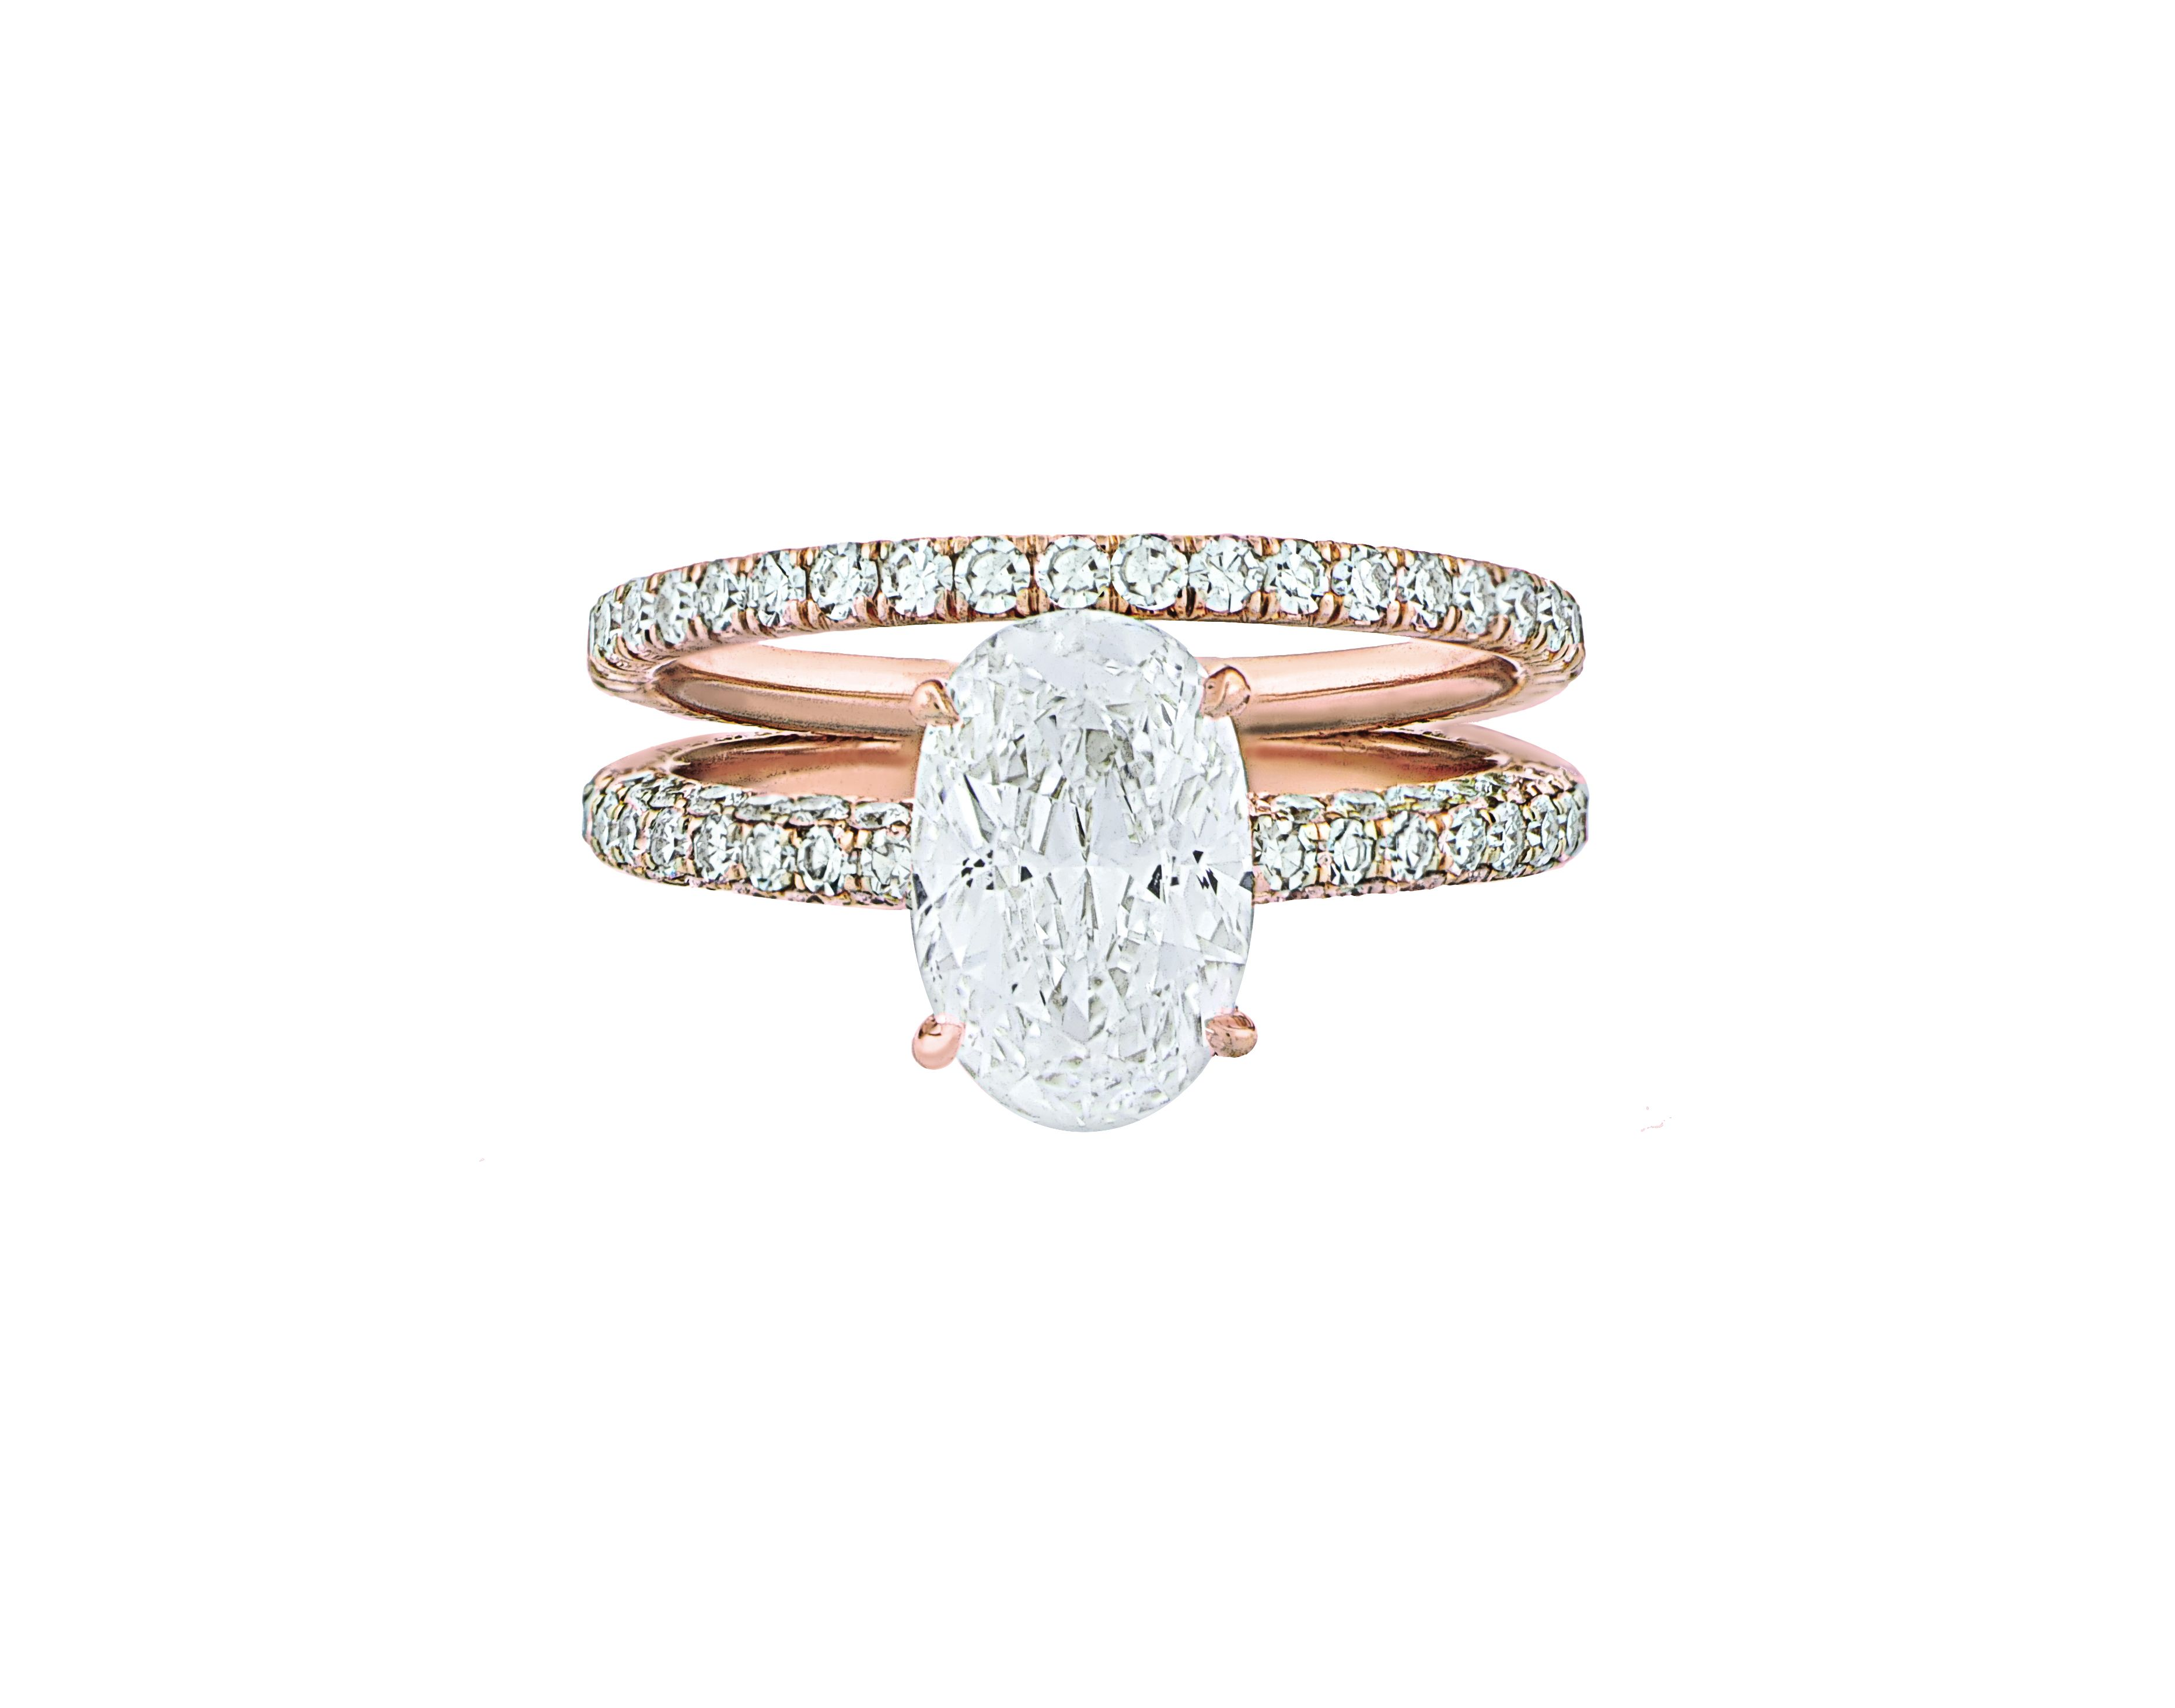 Oval Diamond Engagement Ring with Micropave in Rose Gold and